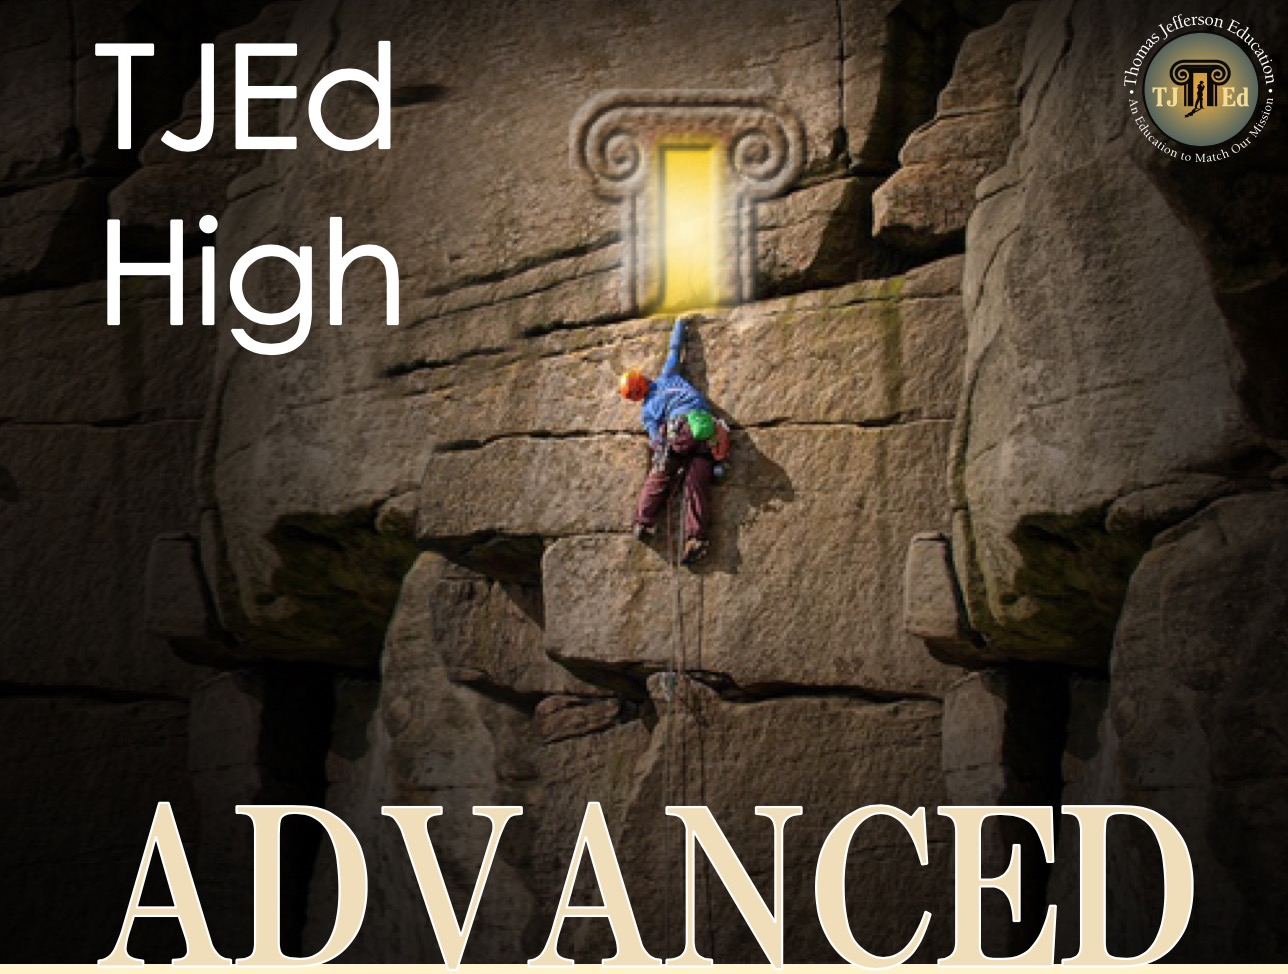 TJEd High Advanced Charter